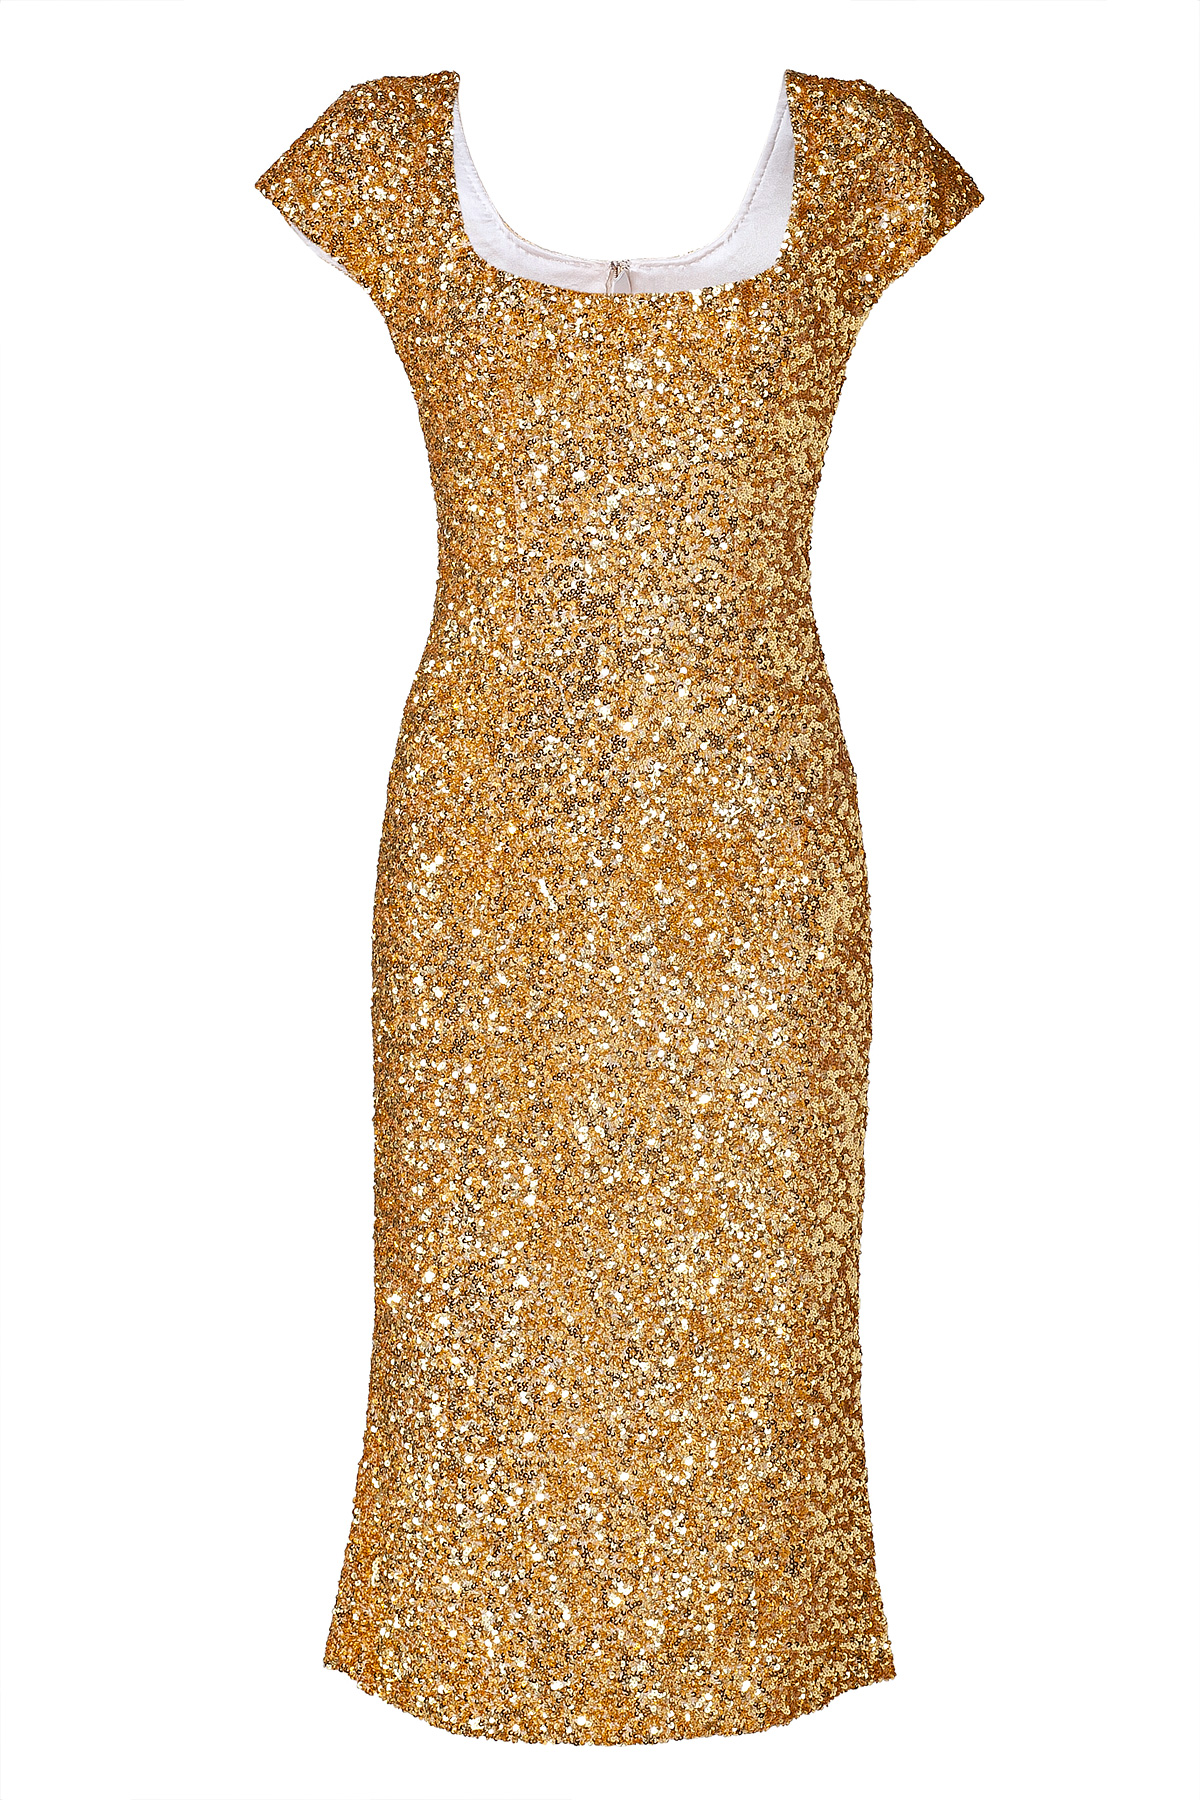 Emilio Pucci Caviar Gold Sequins Dress View Fullscreen